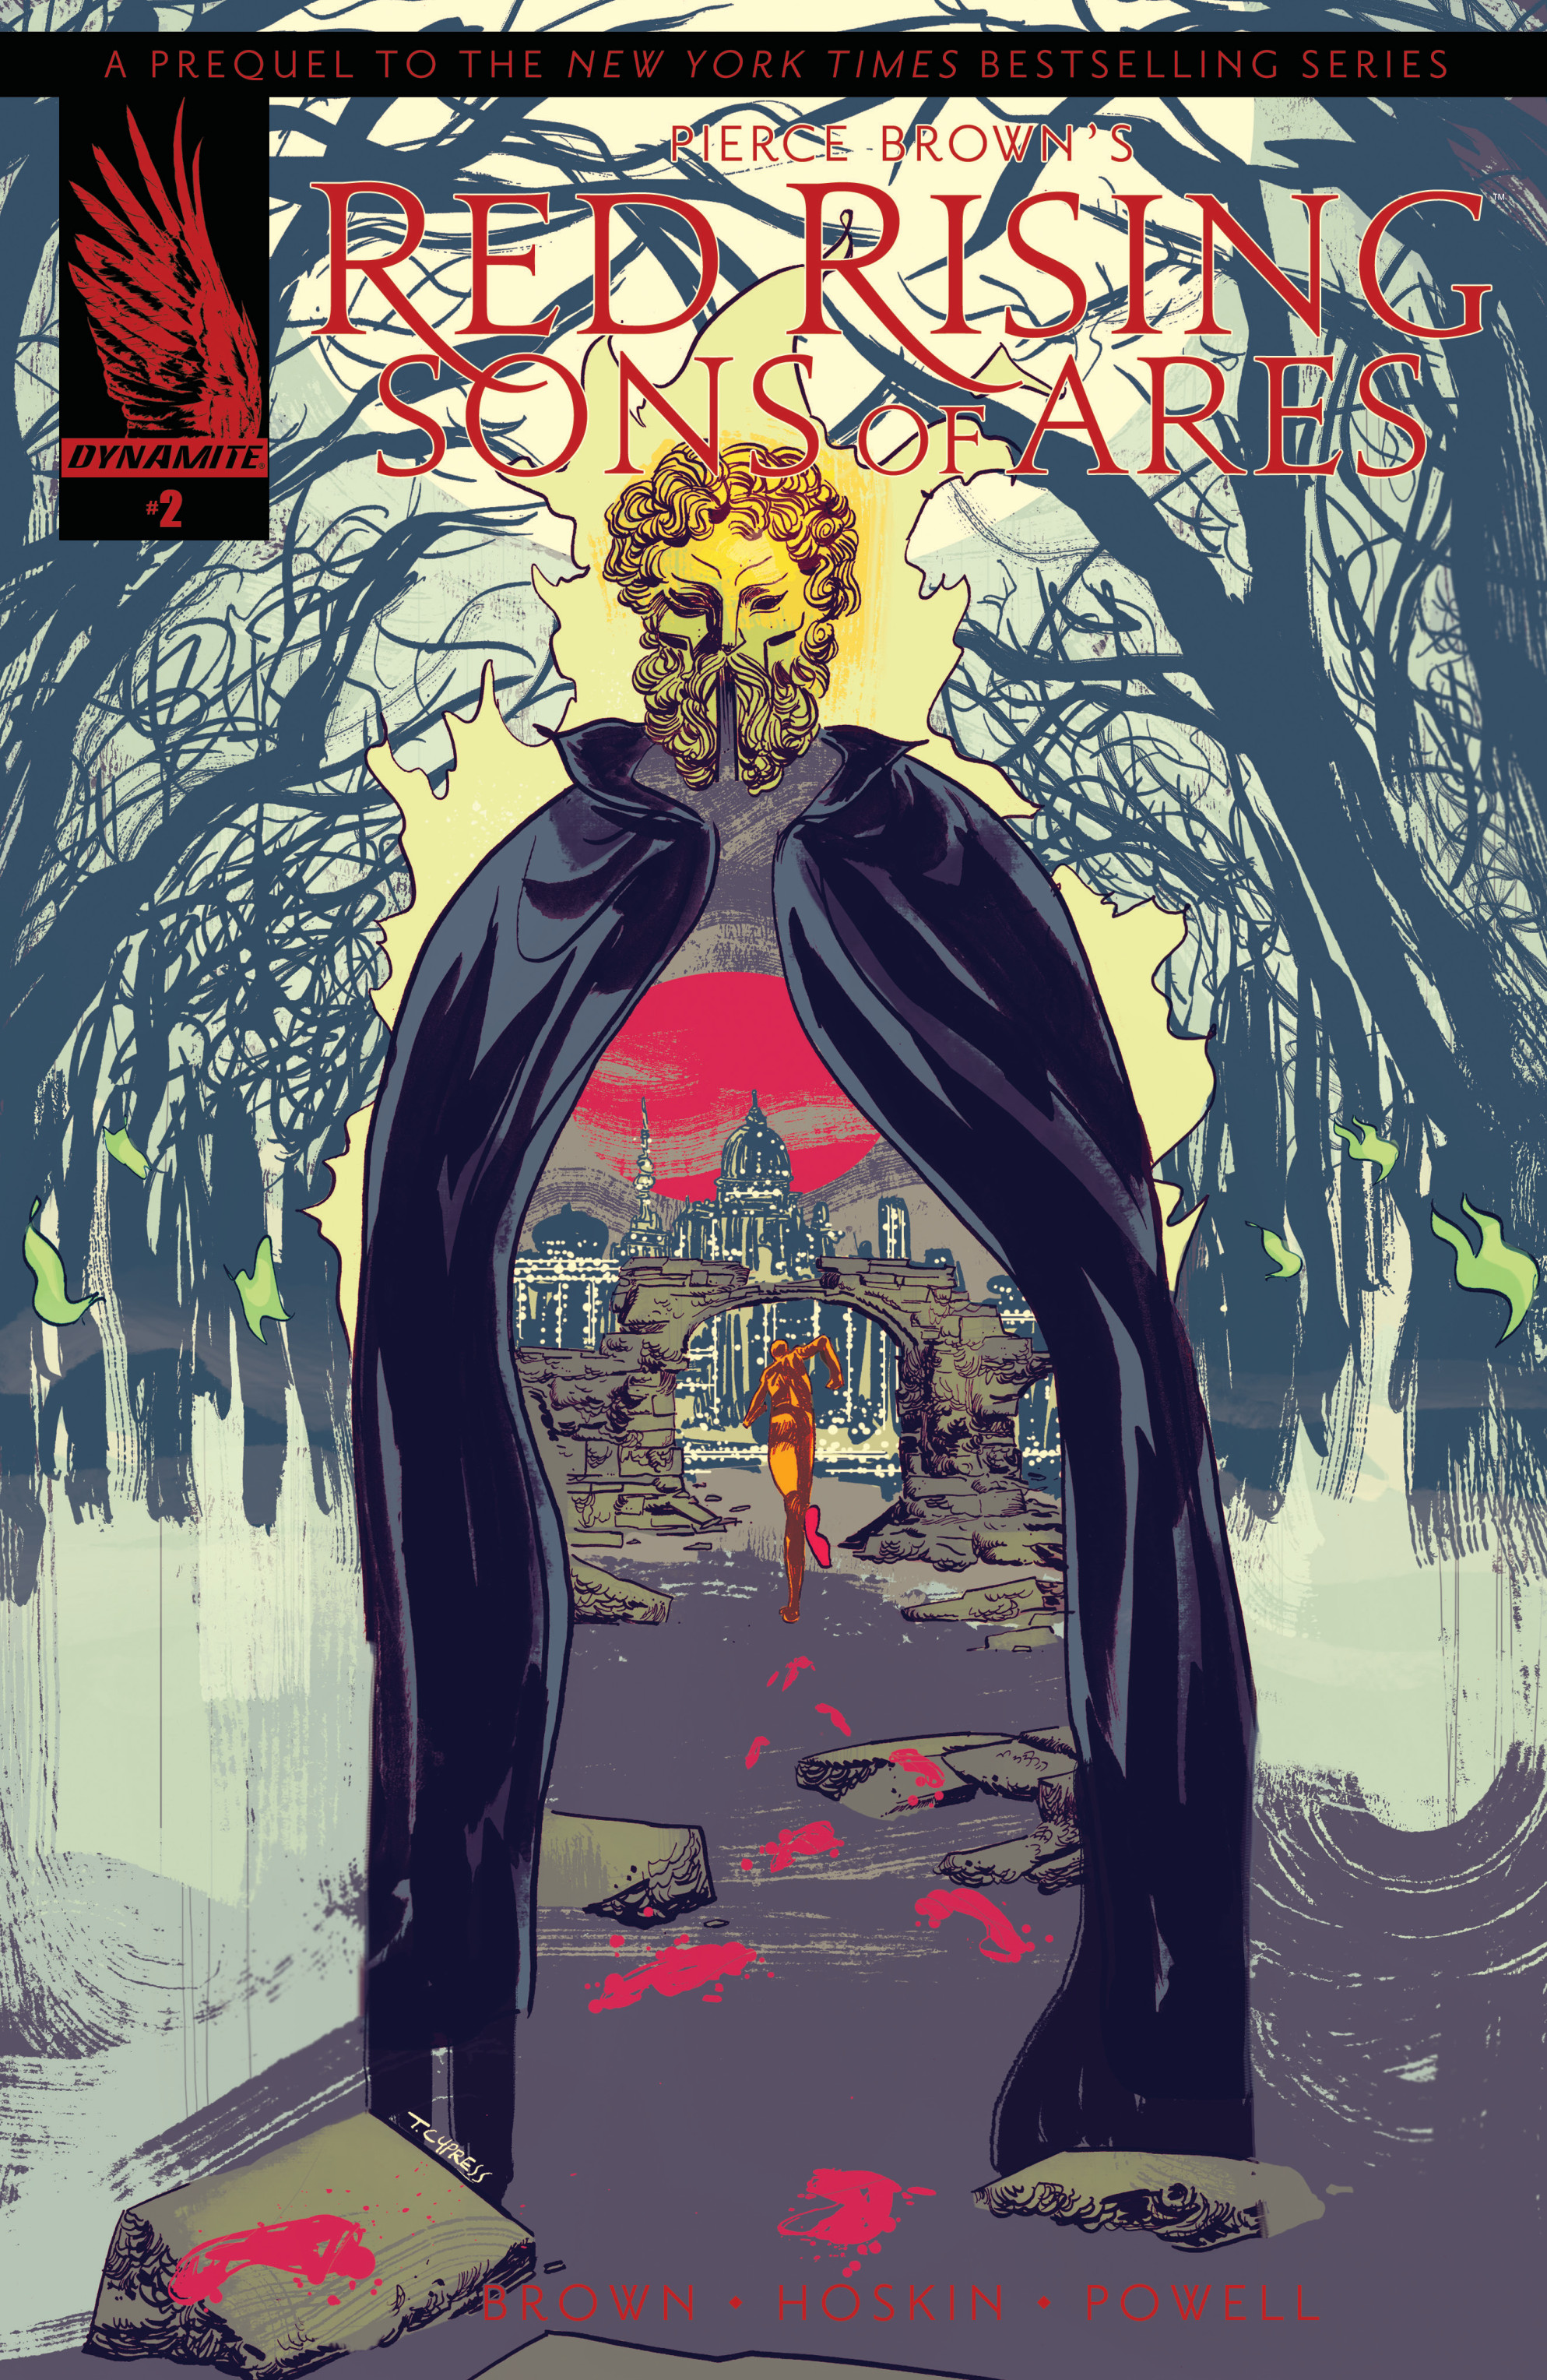 Read online Pierce Brown's Red Rising: Son Of Ares comic -  Issue #2 - 1